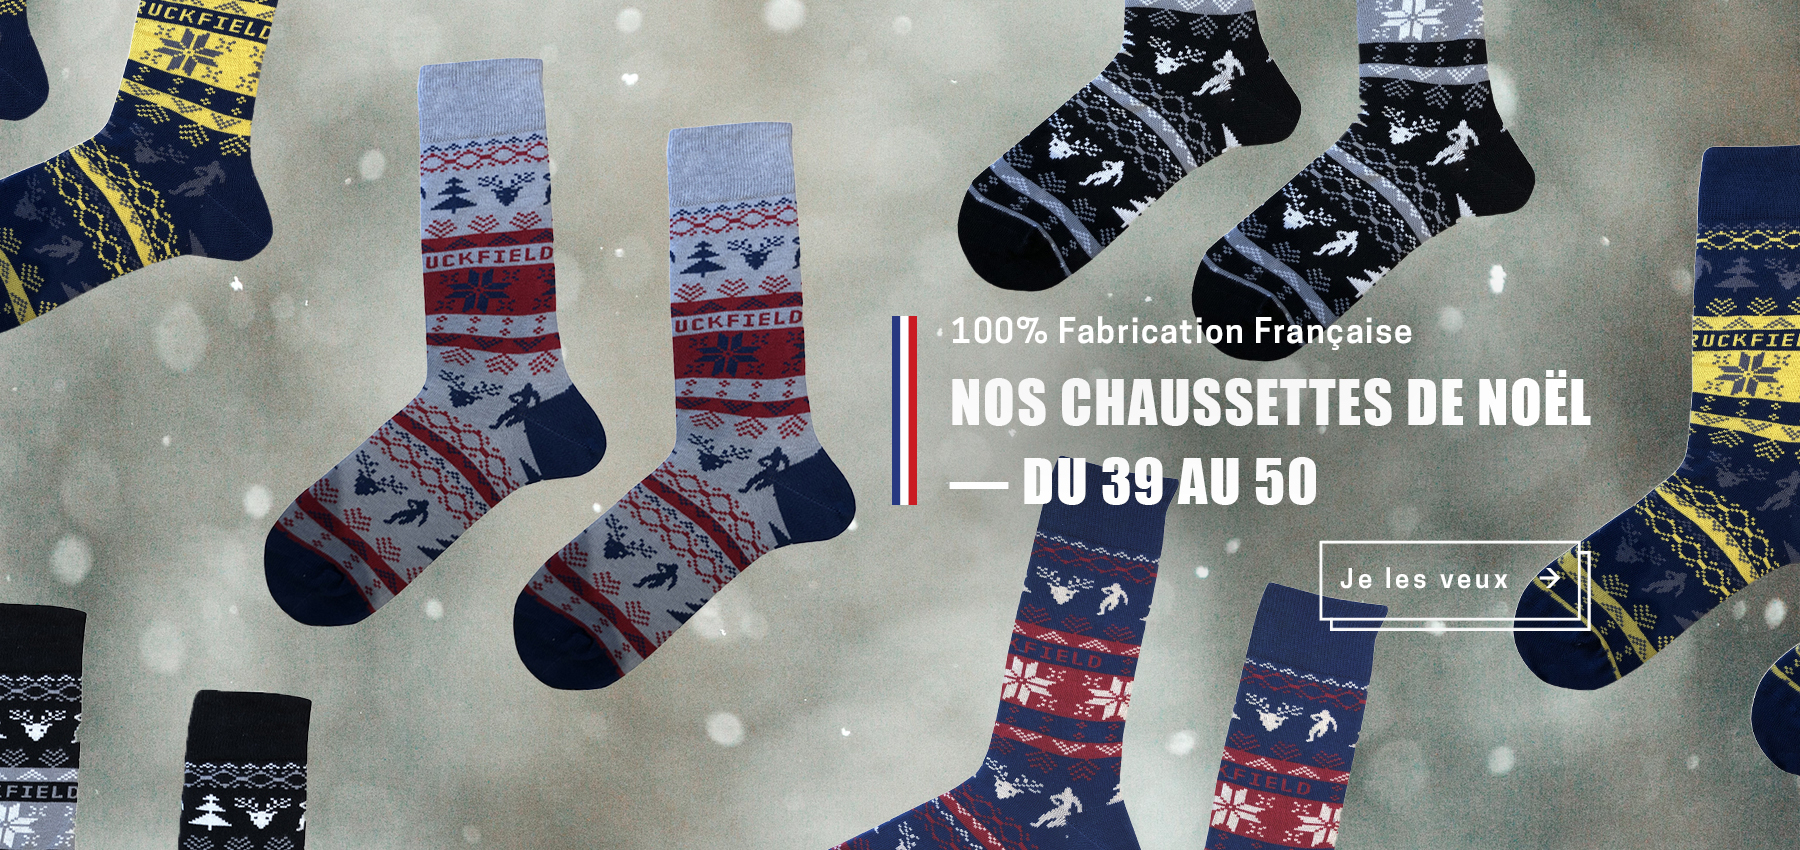 Découvrez les chaussettes Ruckfield made in France